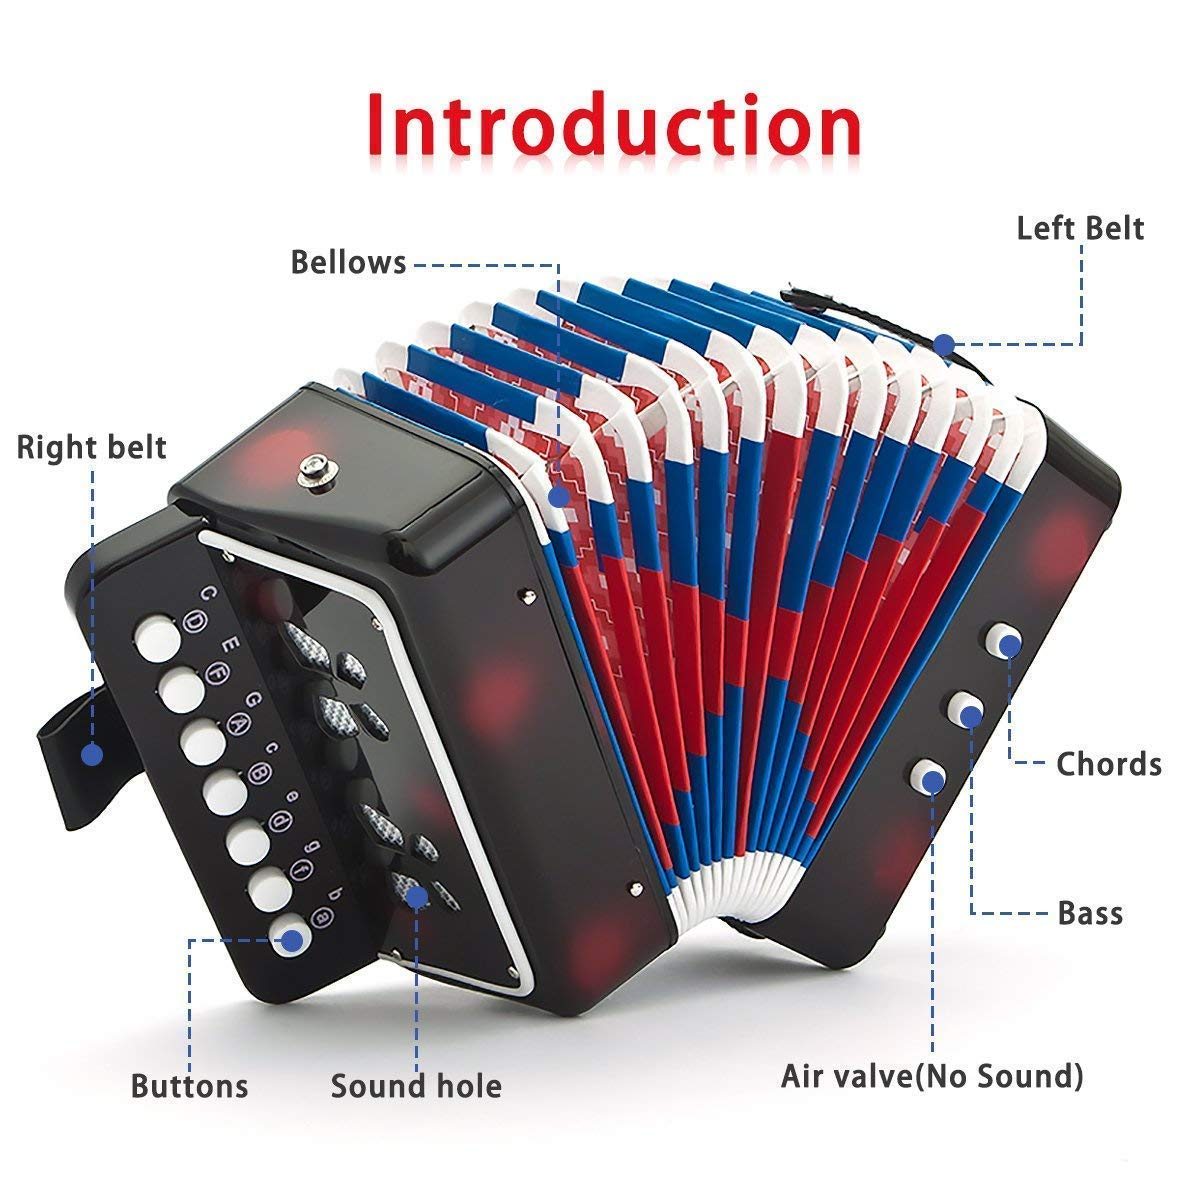 Children Musical Toy Instrument - 7 Keys 2 Bass Kid's Toy Accordion Rhythm Band Toy for Beginner Children Birthday's Gift by DigitalLife (Image #4)